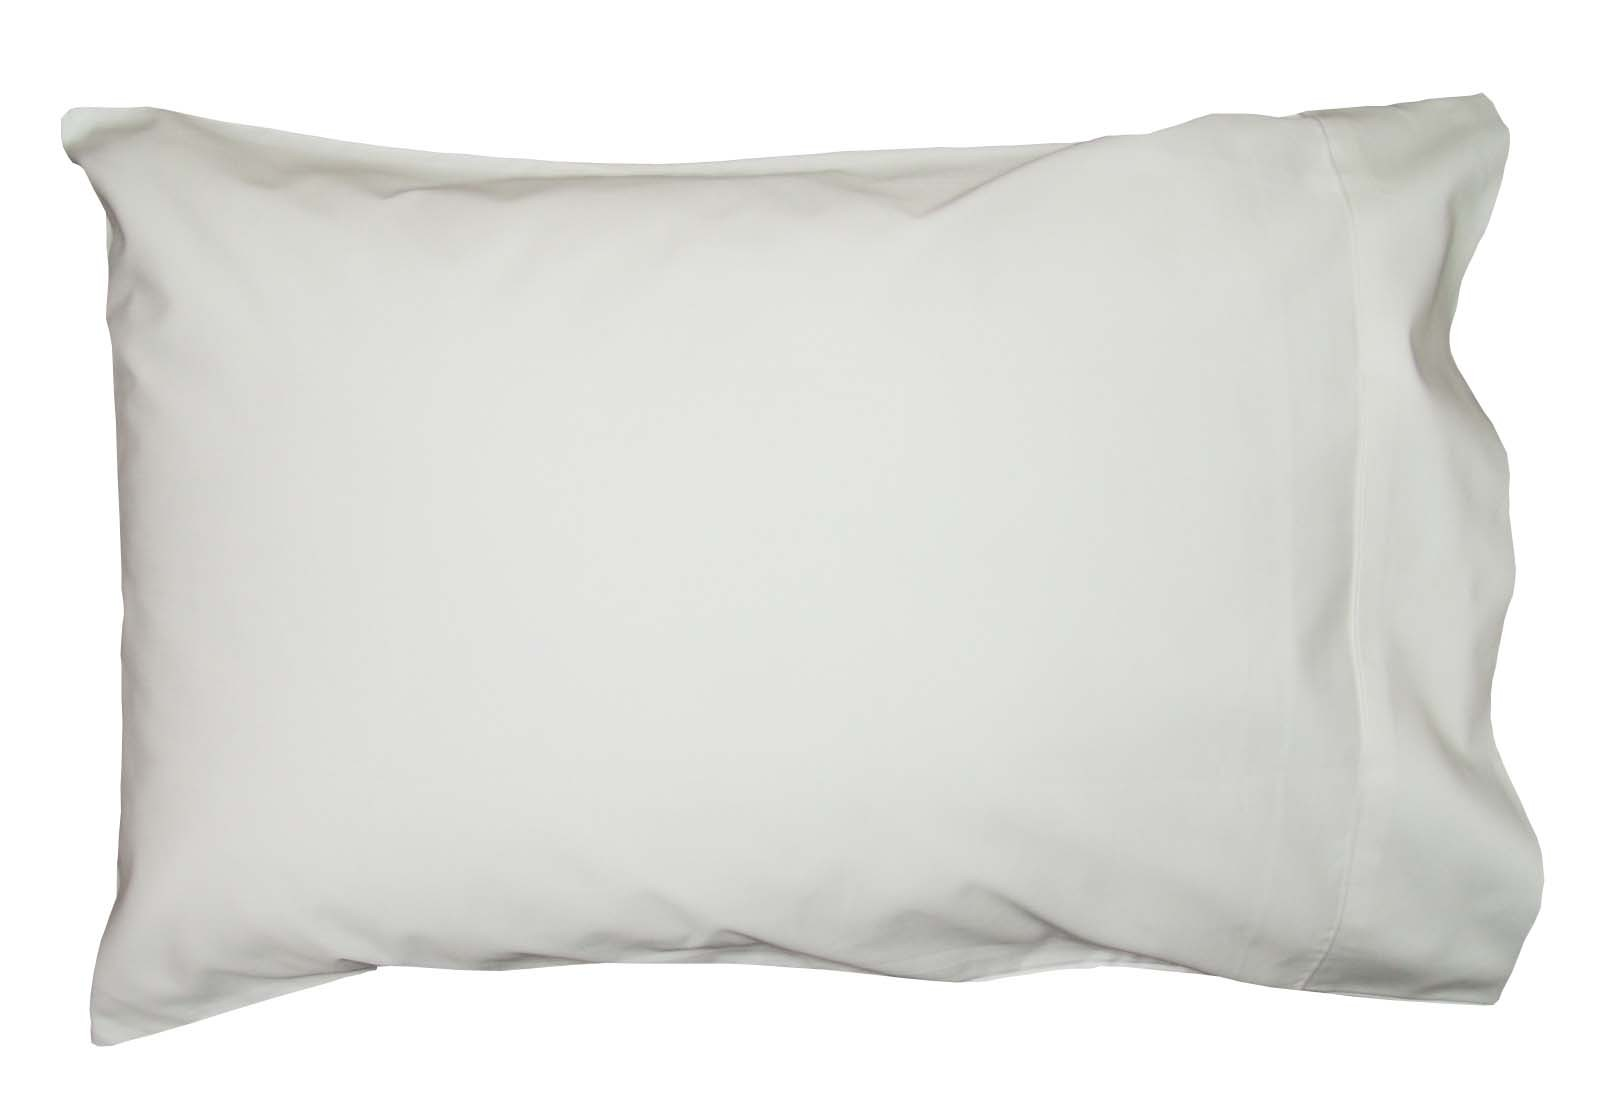 Pillowcases pure cotton 1000 tc ecoliving ecoliving for White craft pillow cases